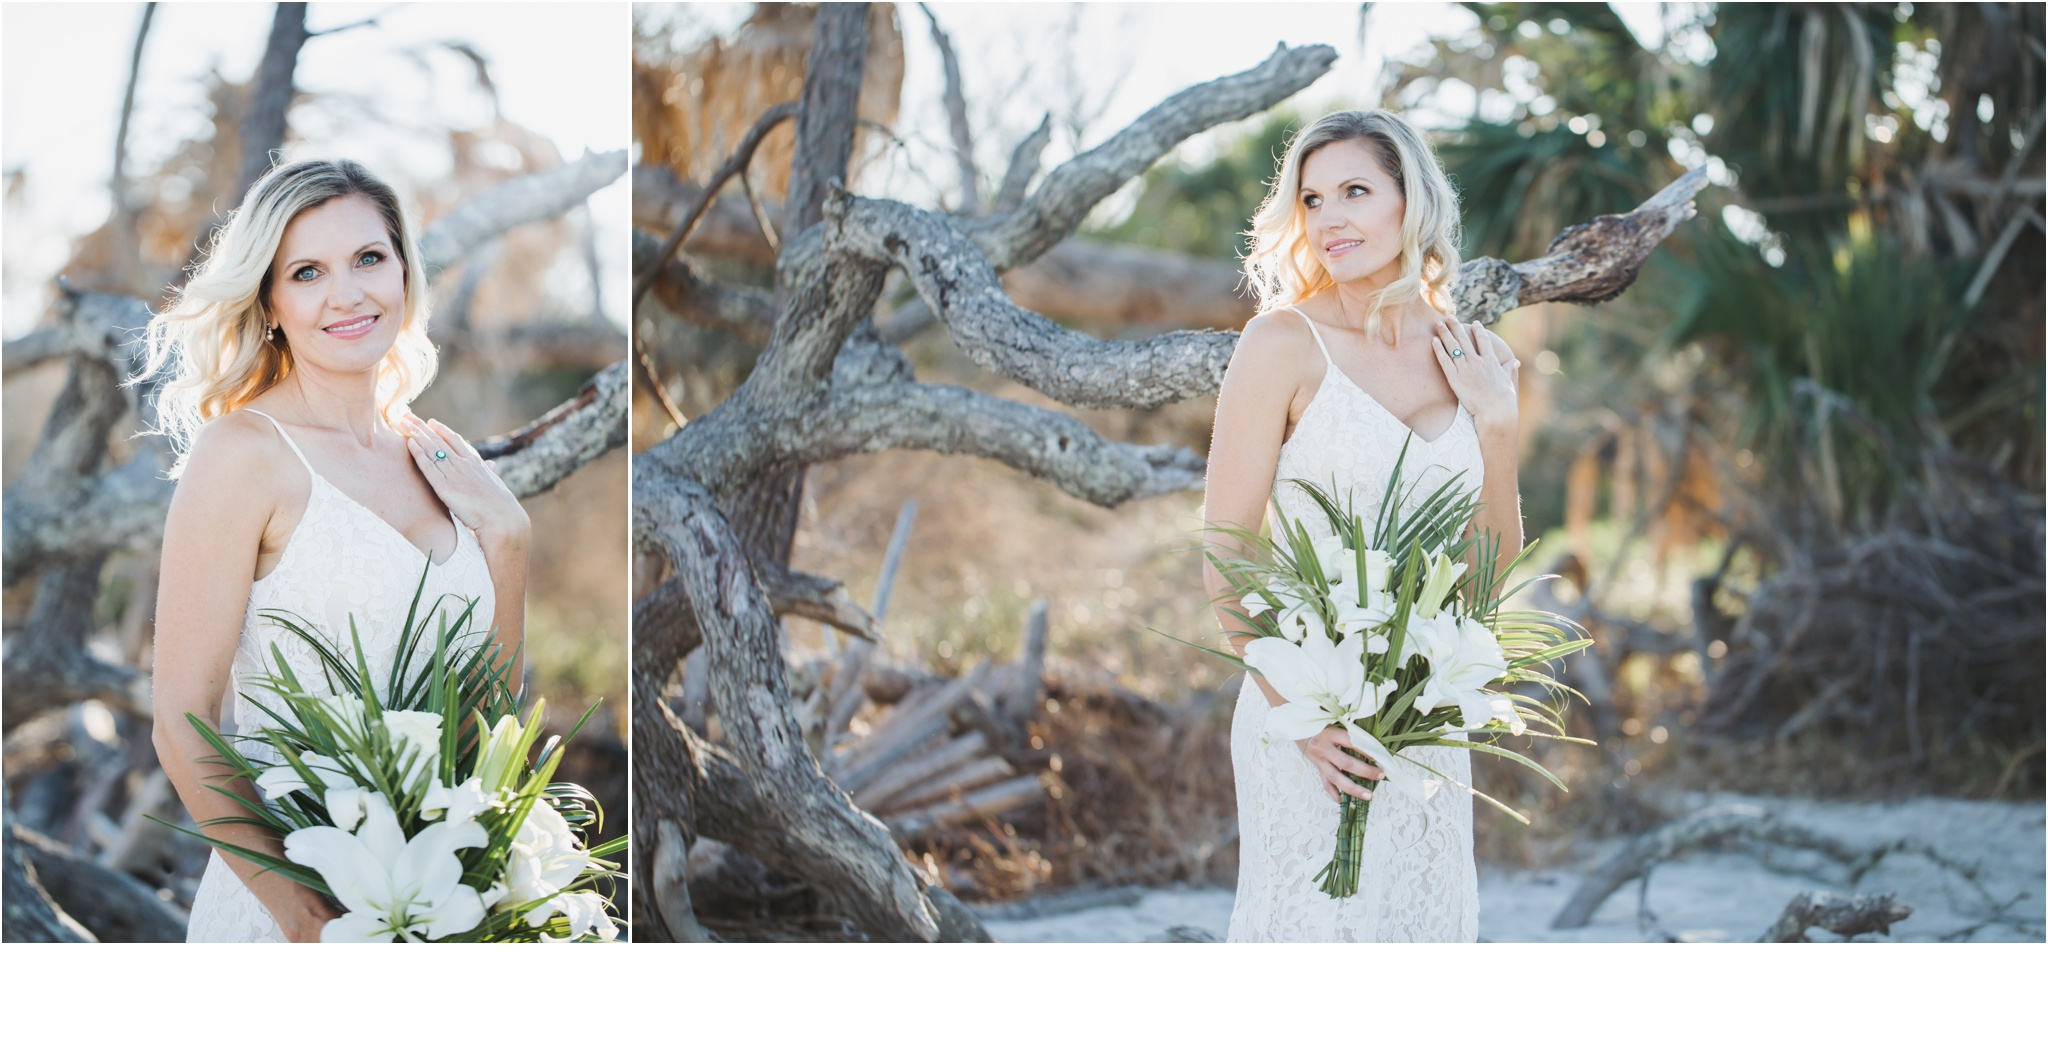 Rainey_Gregg_Photography_St._Simons_Island_Georgia_California_Wedding_Portrait_Photography_1575.jpg